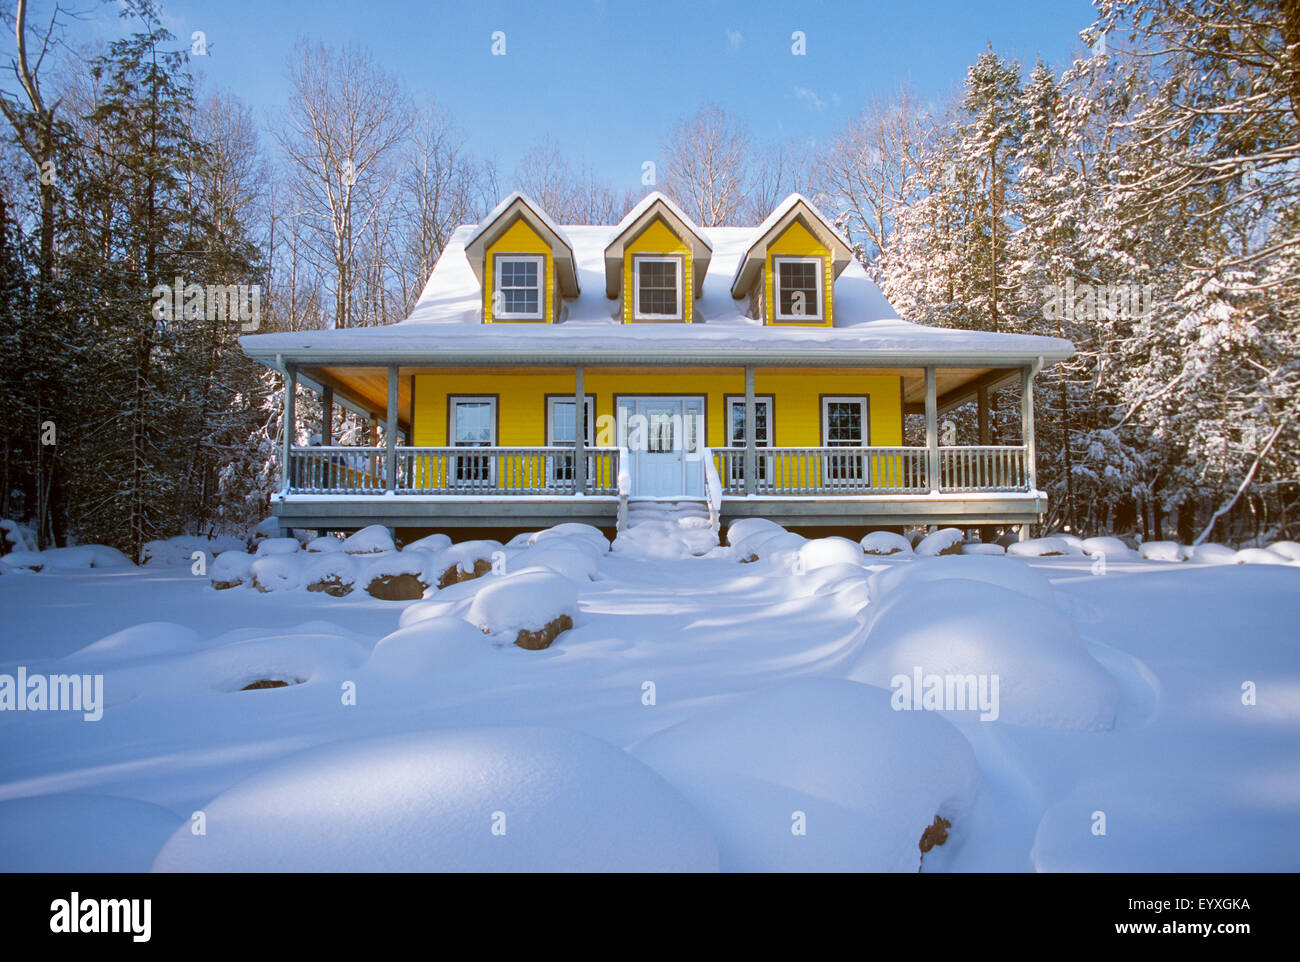 house with veranda and dormer windows North America, Canada, Ontario - Stock Image